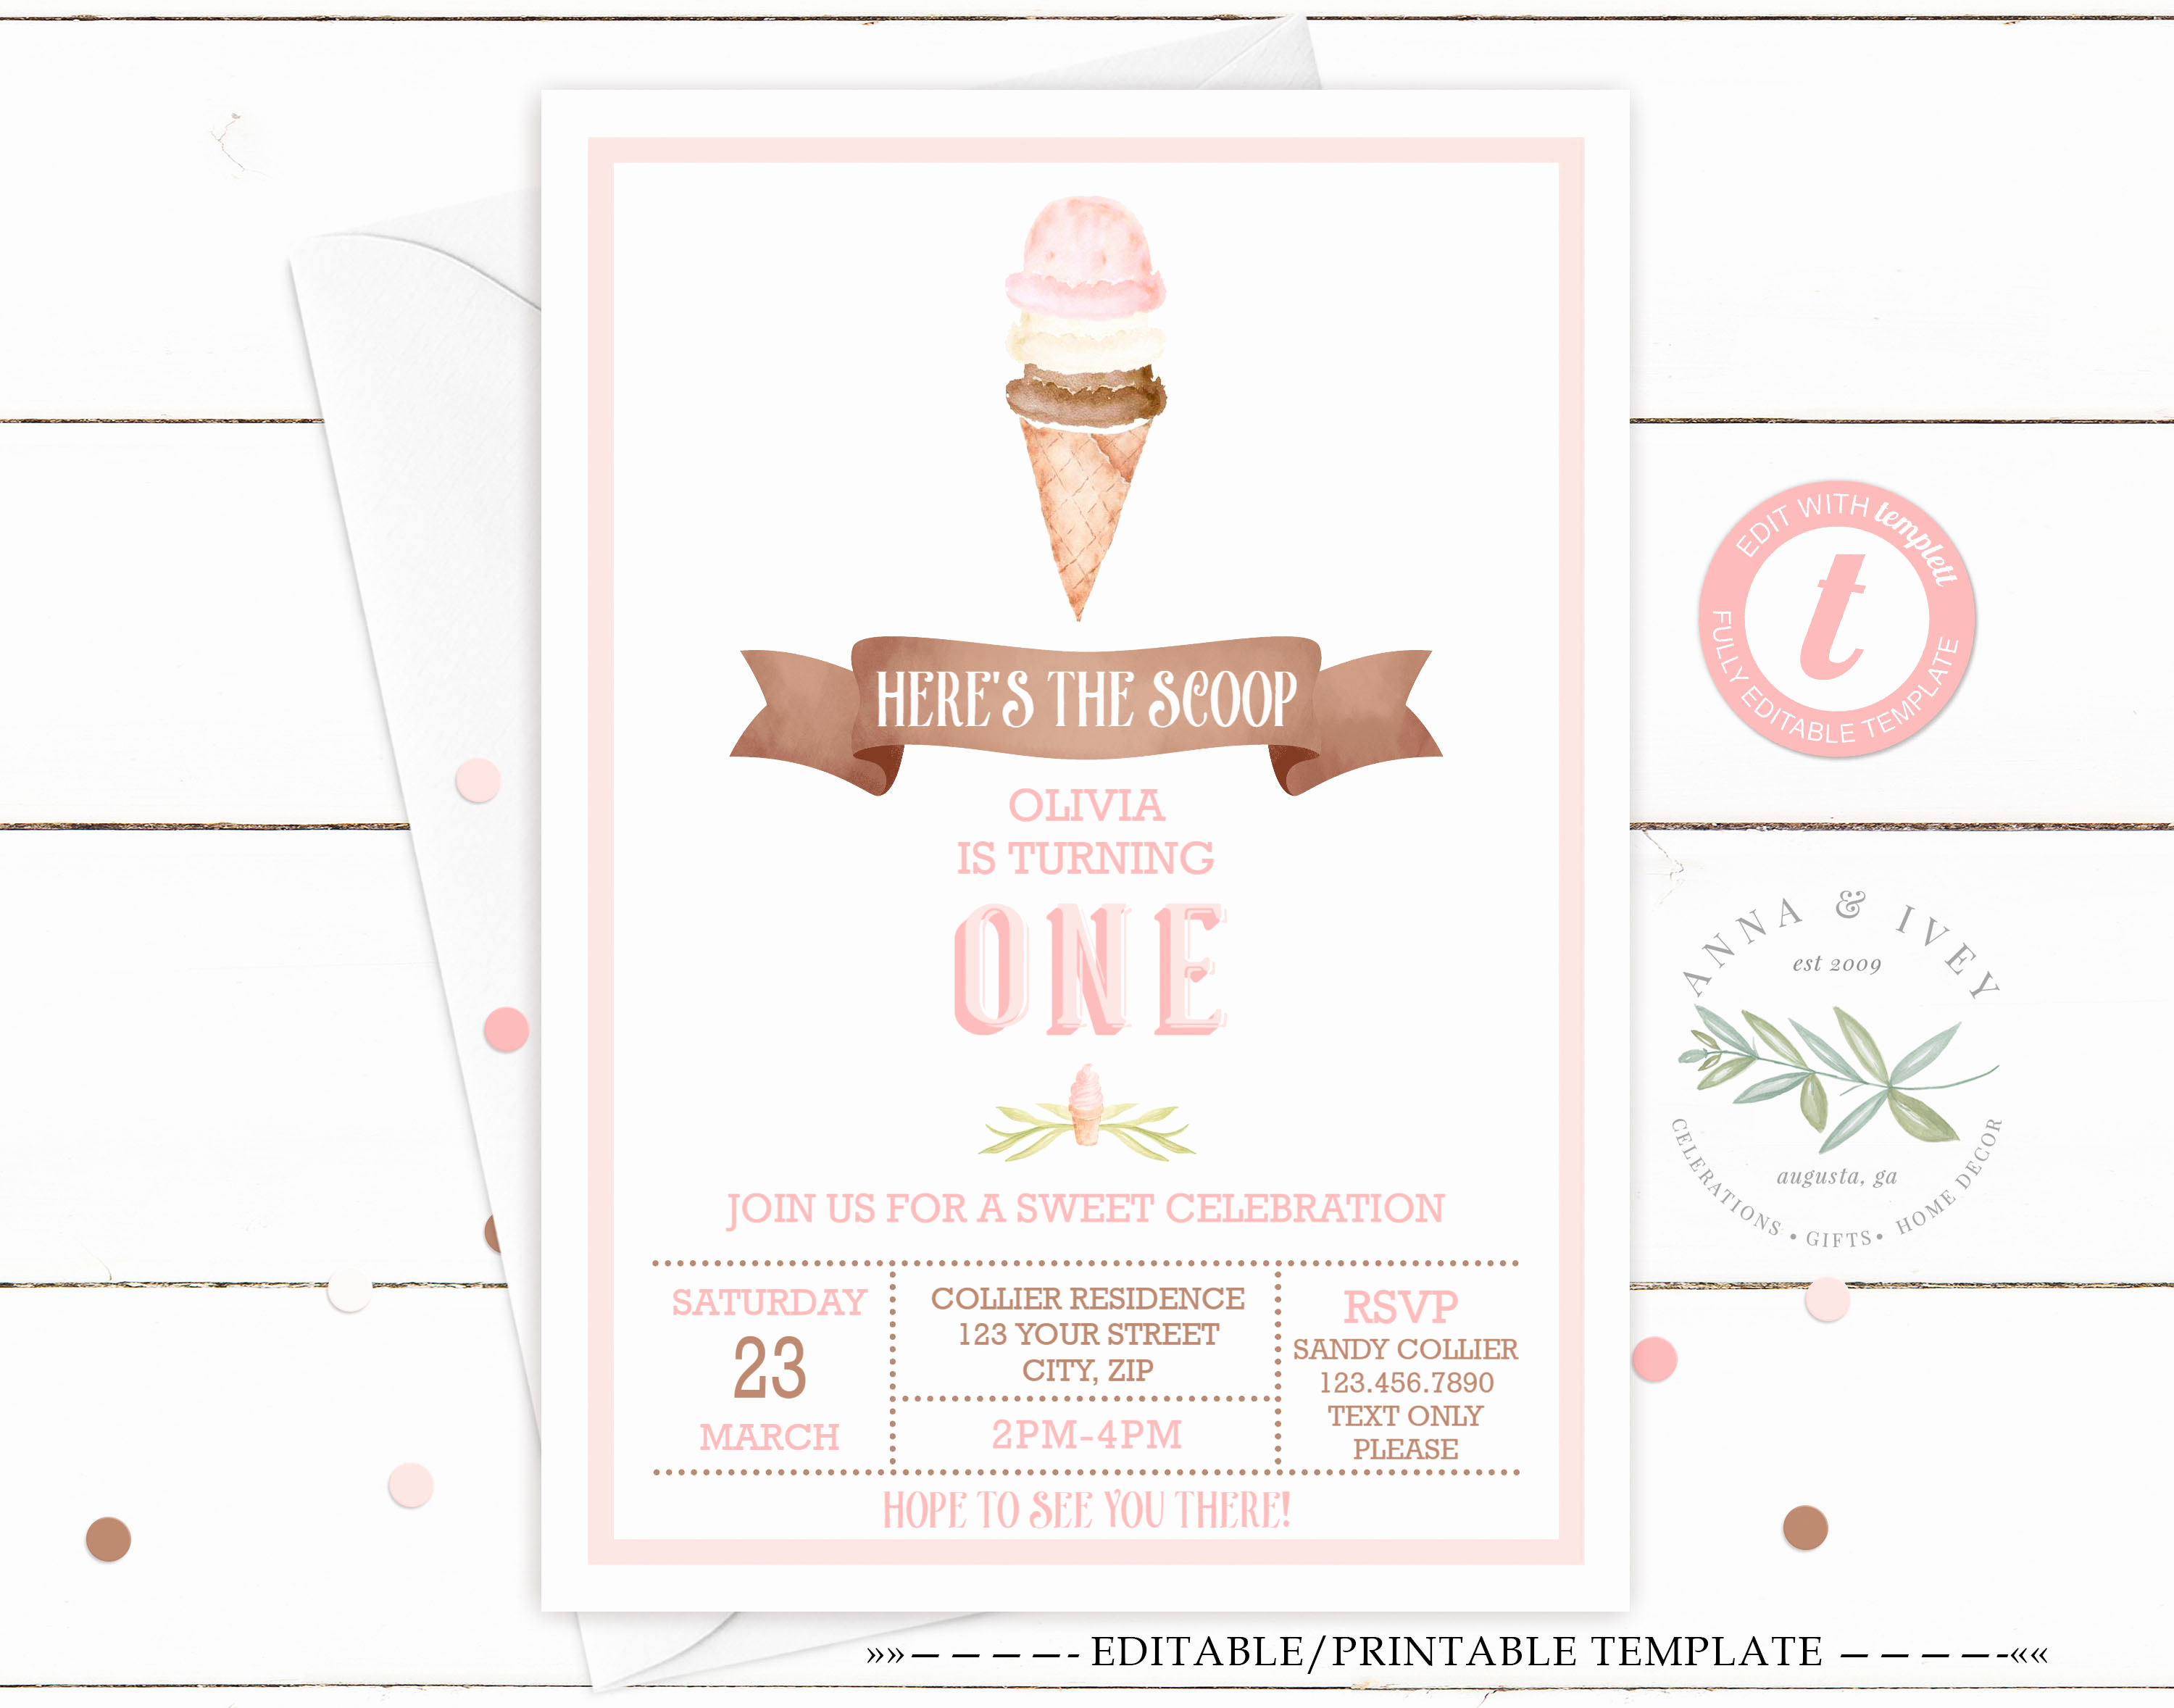 Ice Cream Party Invitation Beautiful Printable Ice Cream Party Invitation White Anna & Ivey